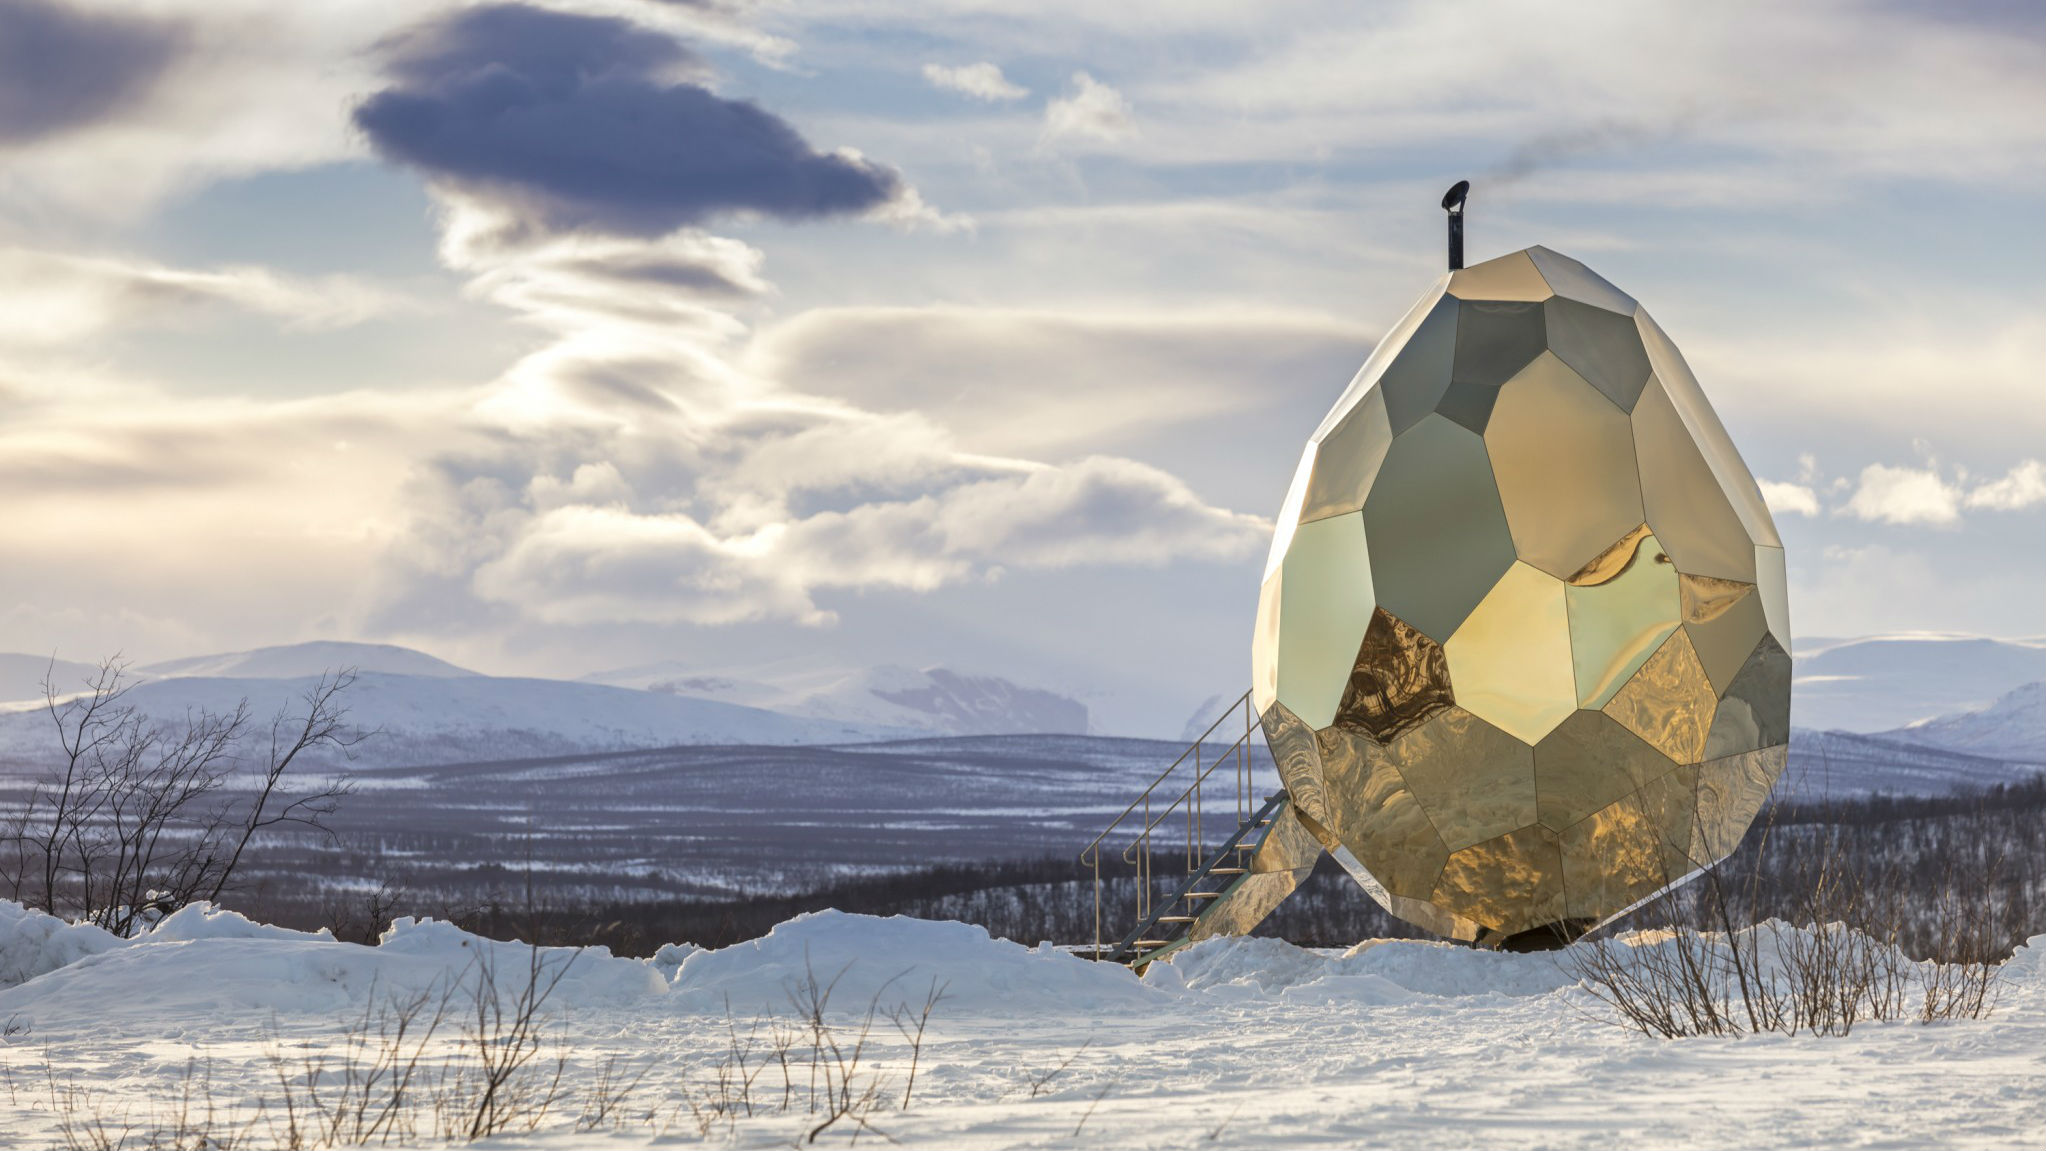 The Solar Egg, Björkliden, Sweden, by Bigert & Bergstrom for Riksbyggen